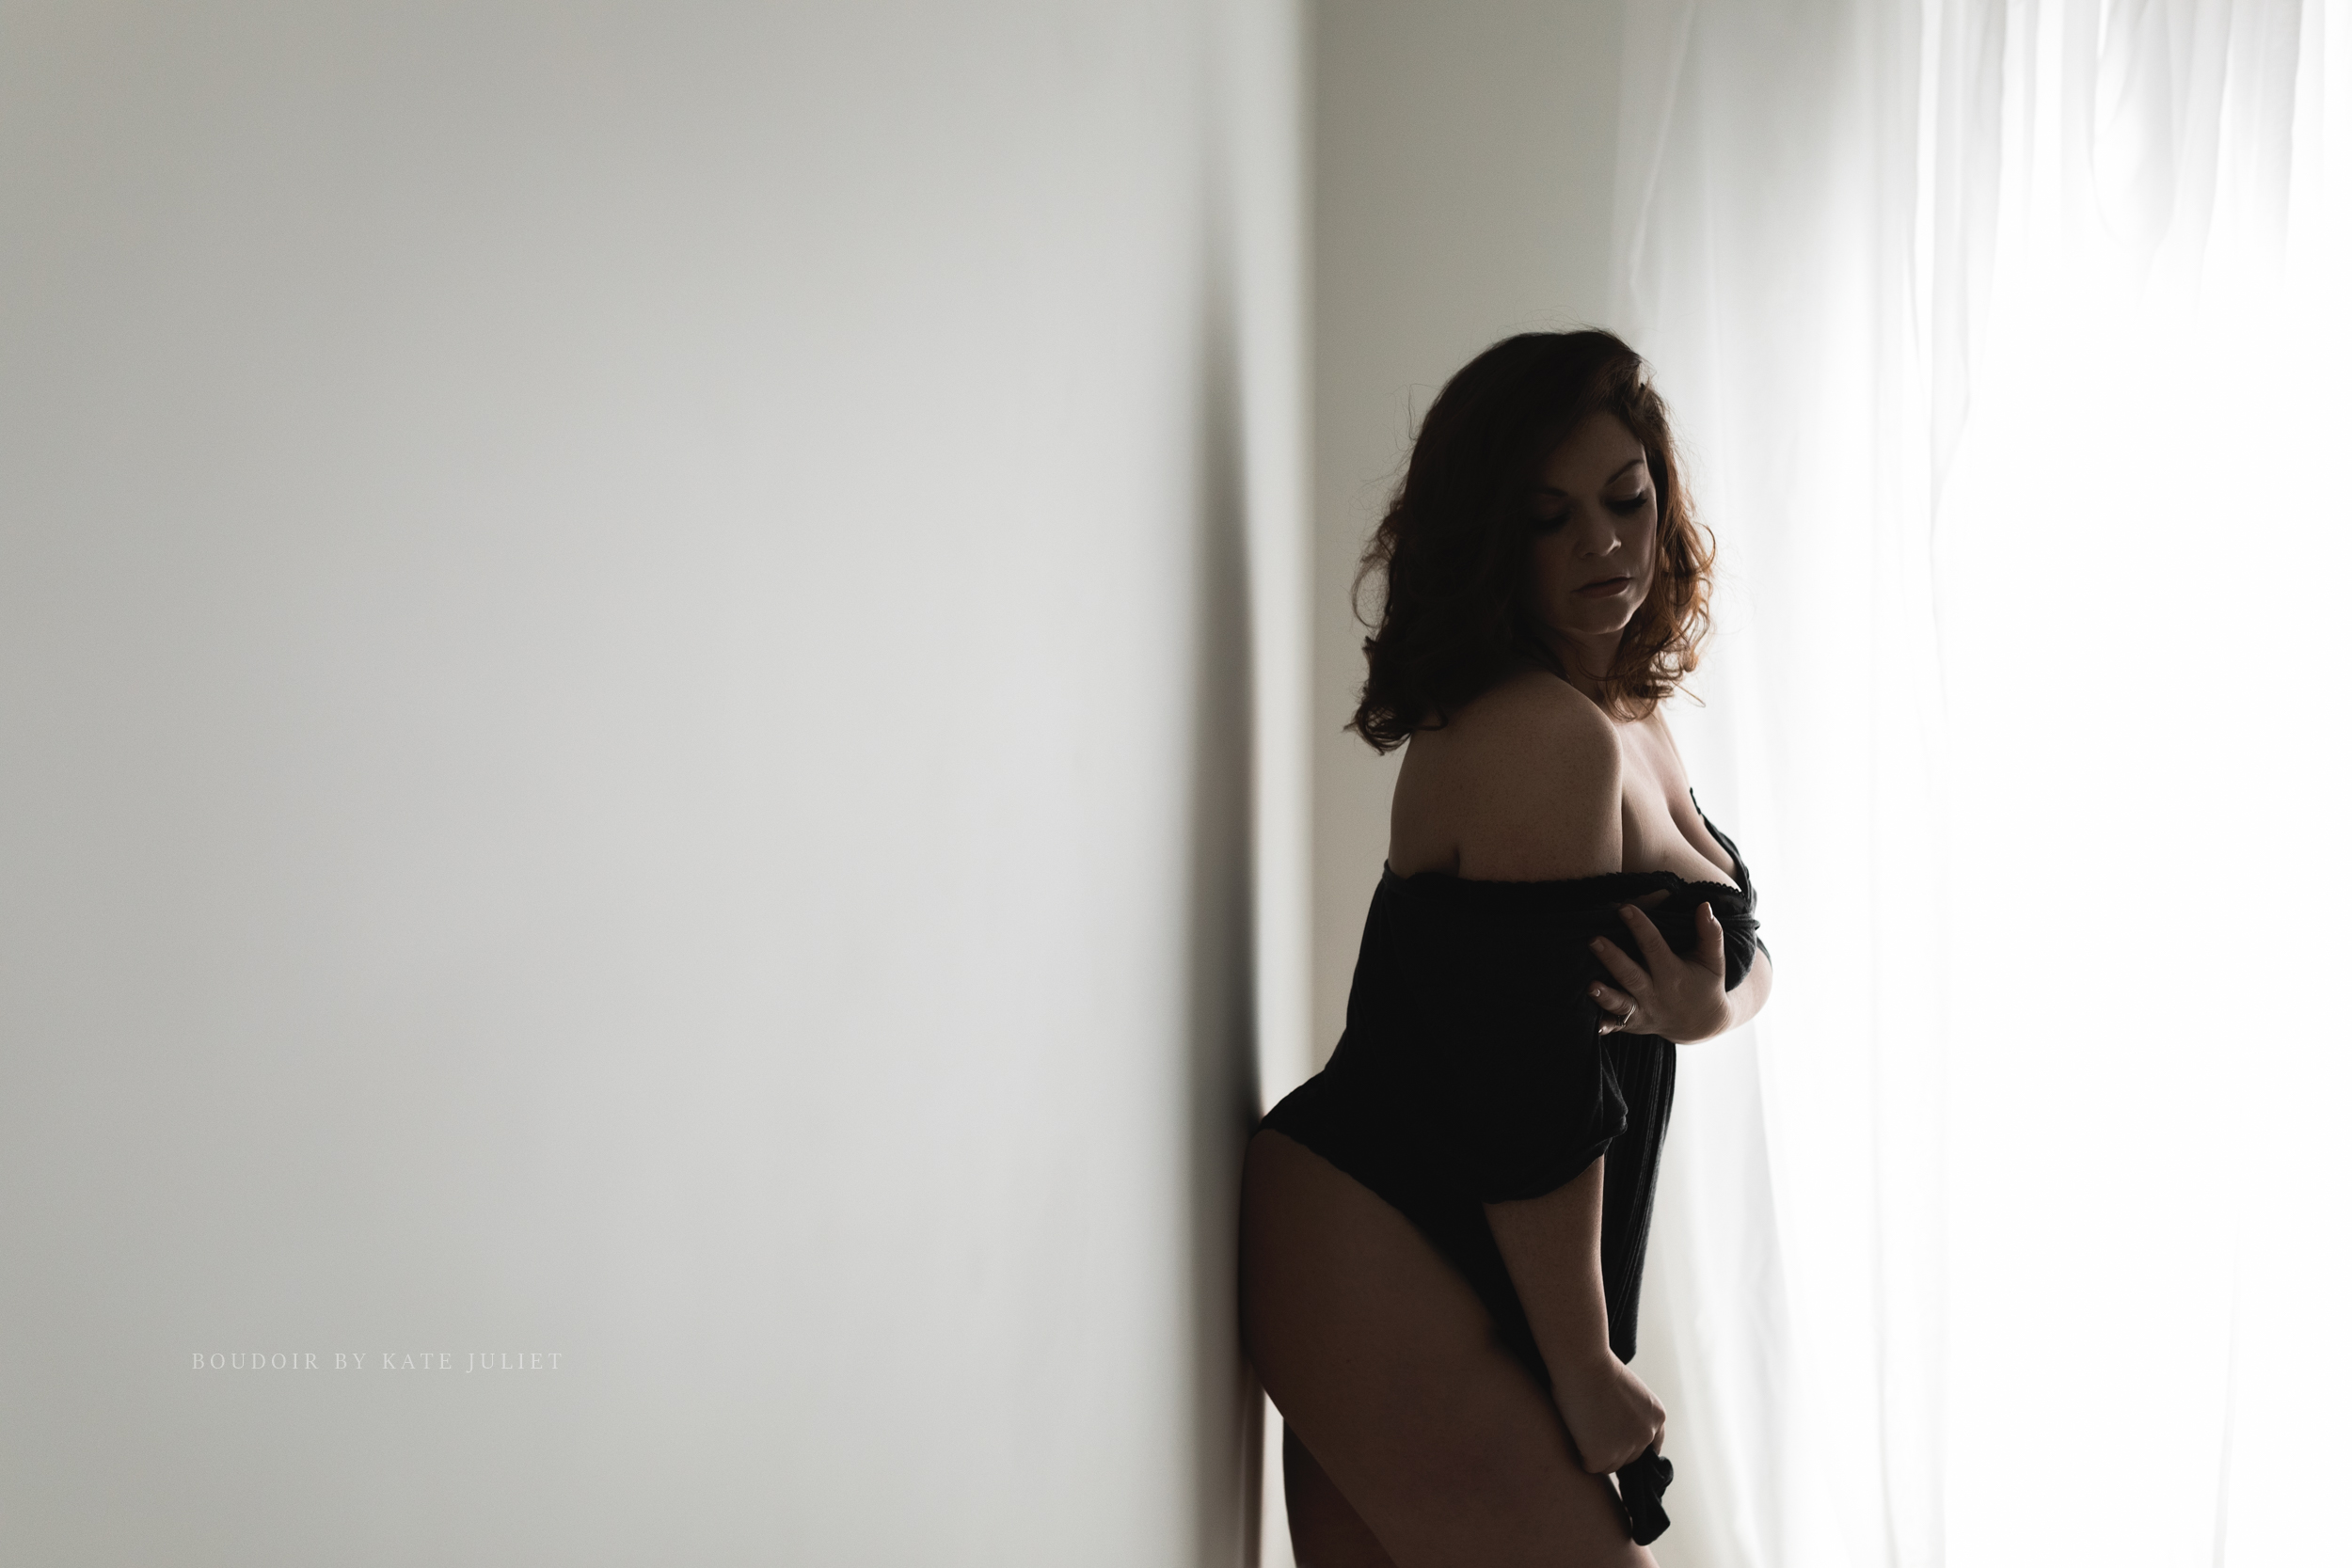 boudoir_by_kate_juliet_web-1-3.jpg